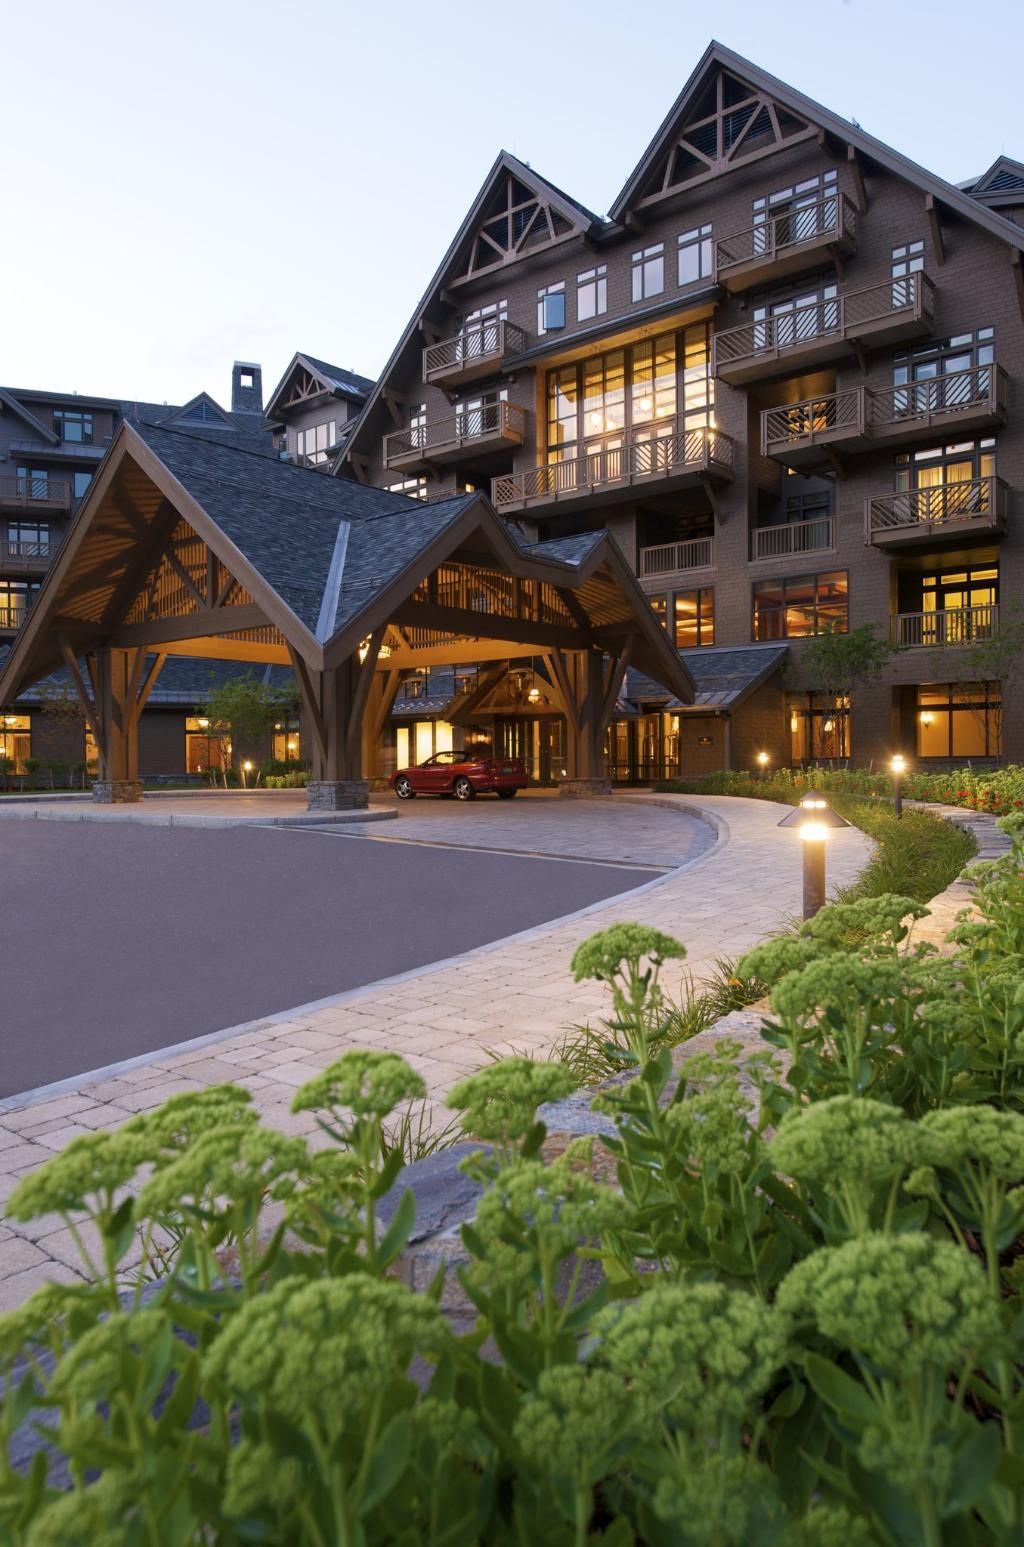 stowe mountain lodge (vermont) - hotel reviews - tripadvisor